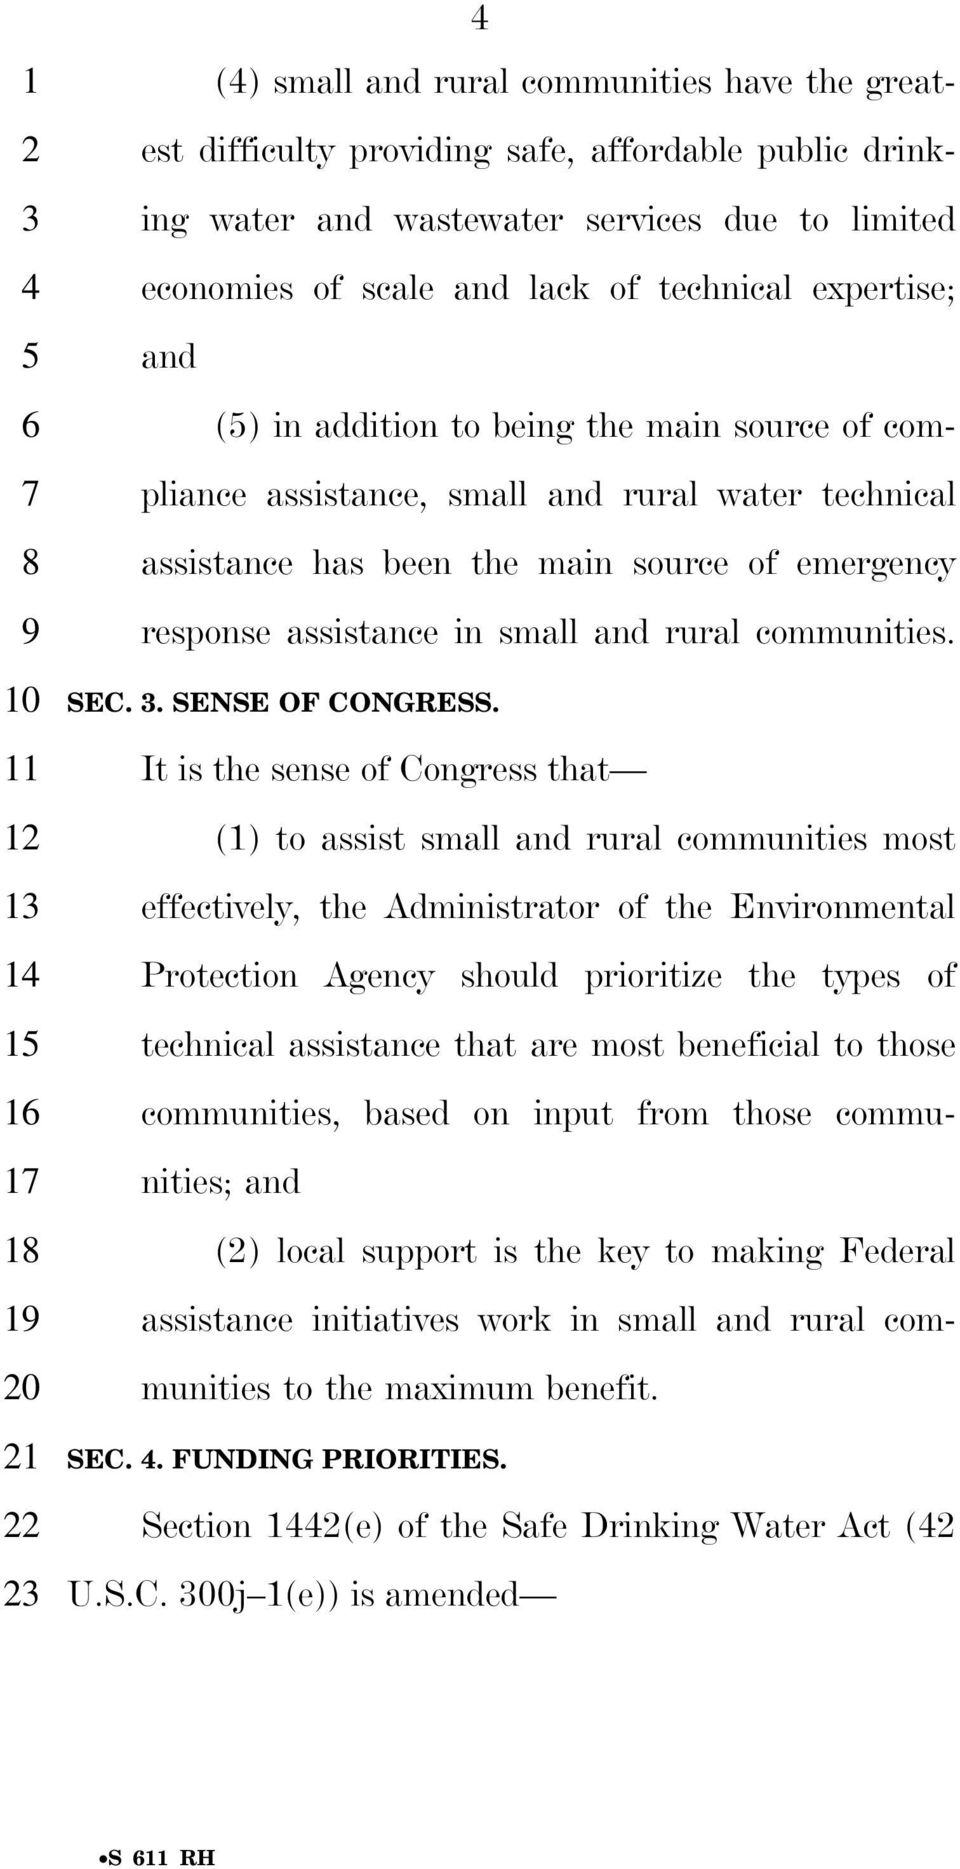 source of emergency response assistance in small and rural communities. SEC. 3. SENSE OF CONGRESS.